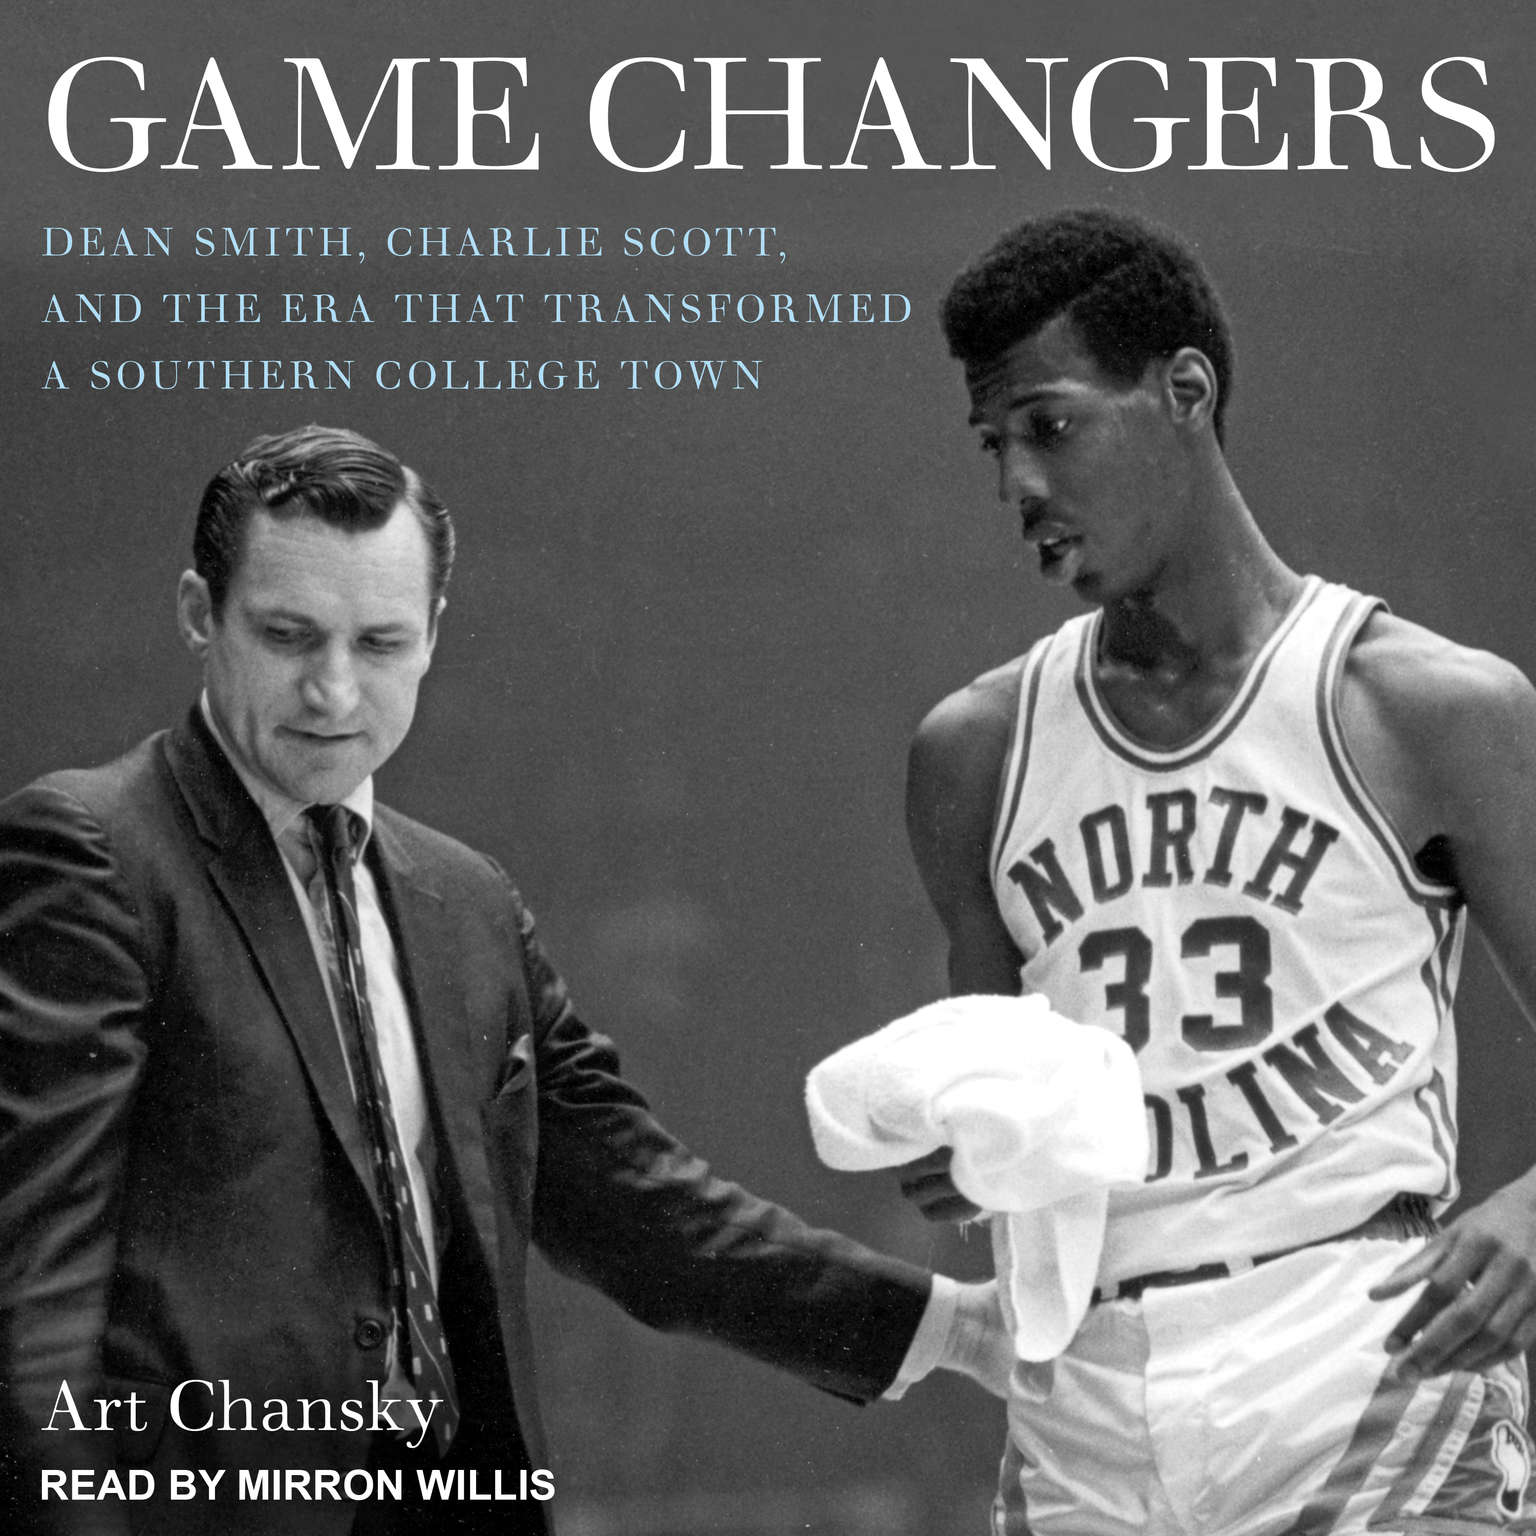 Game Changers: Dean Smith, Charlie Scott, and the Era That Transformed a Southern College Town Audiobook, by Art Chansky